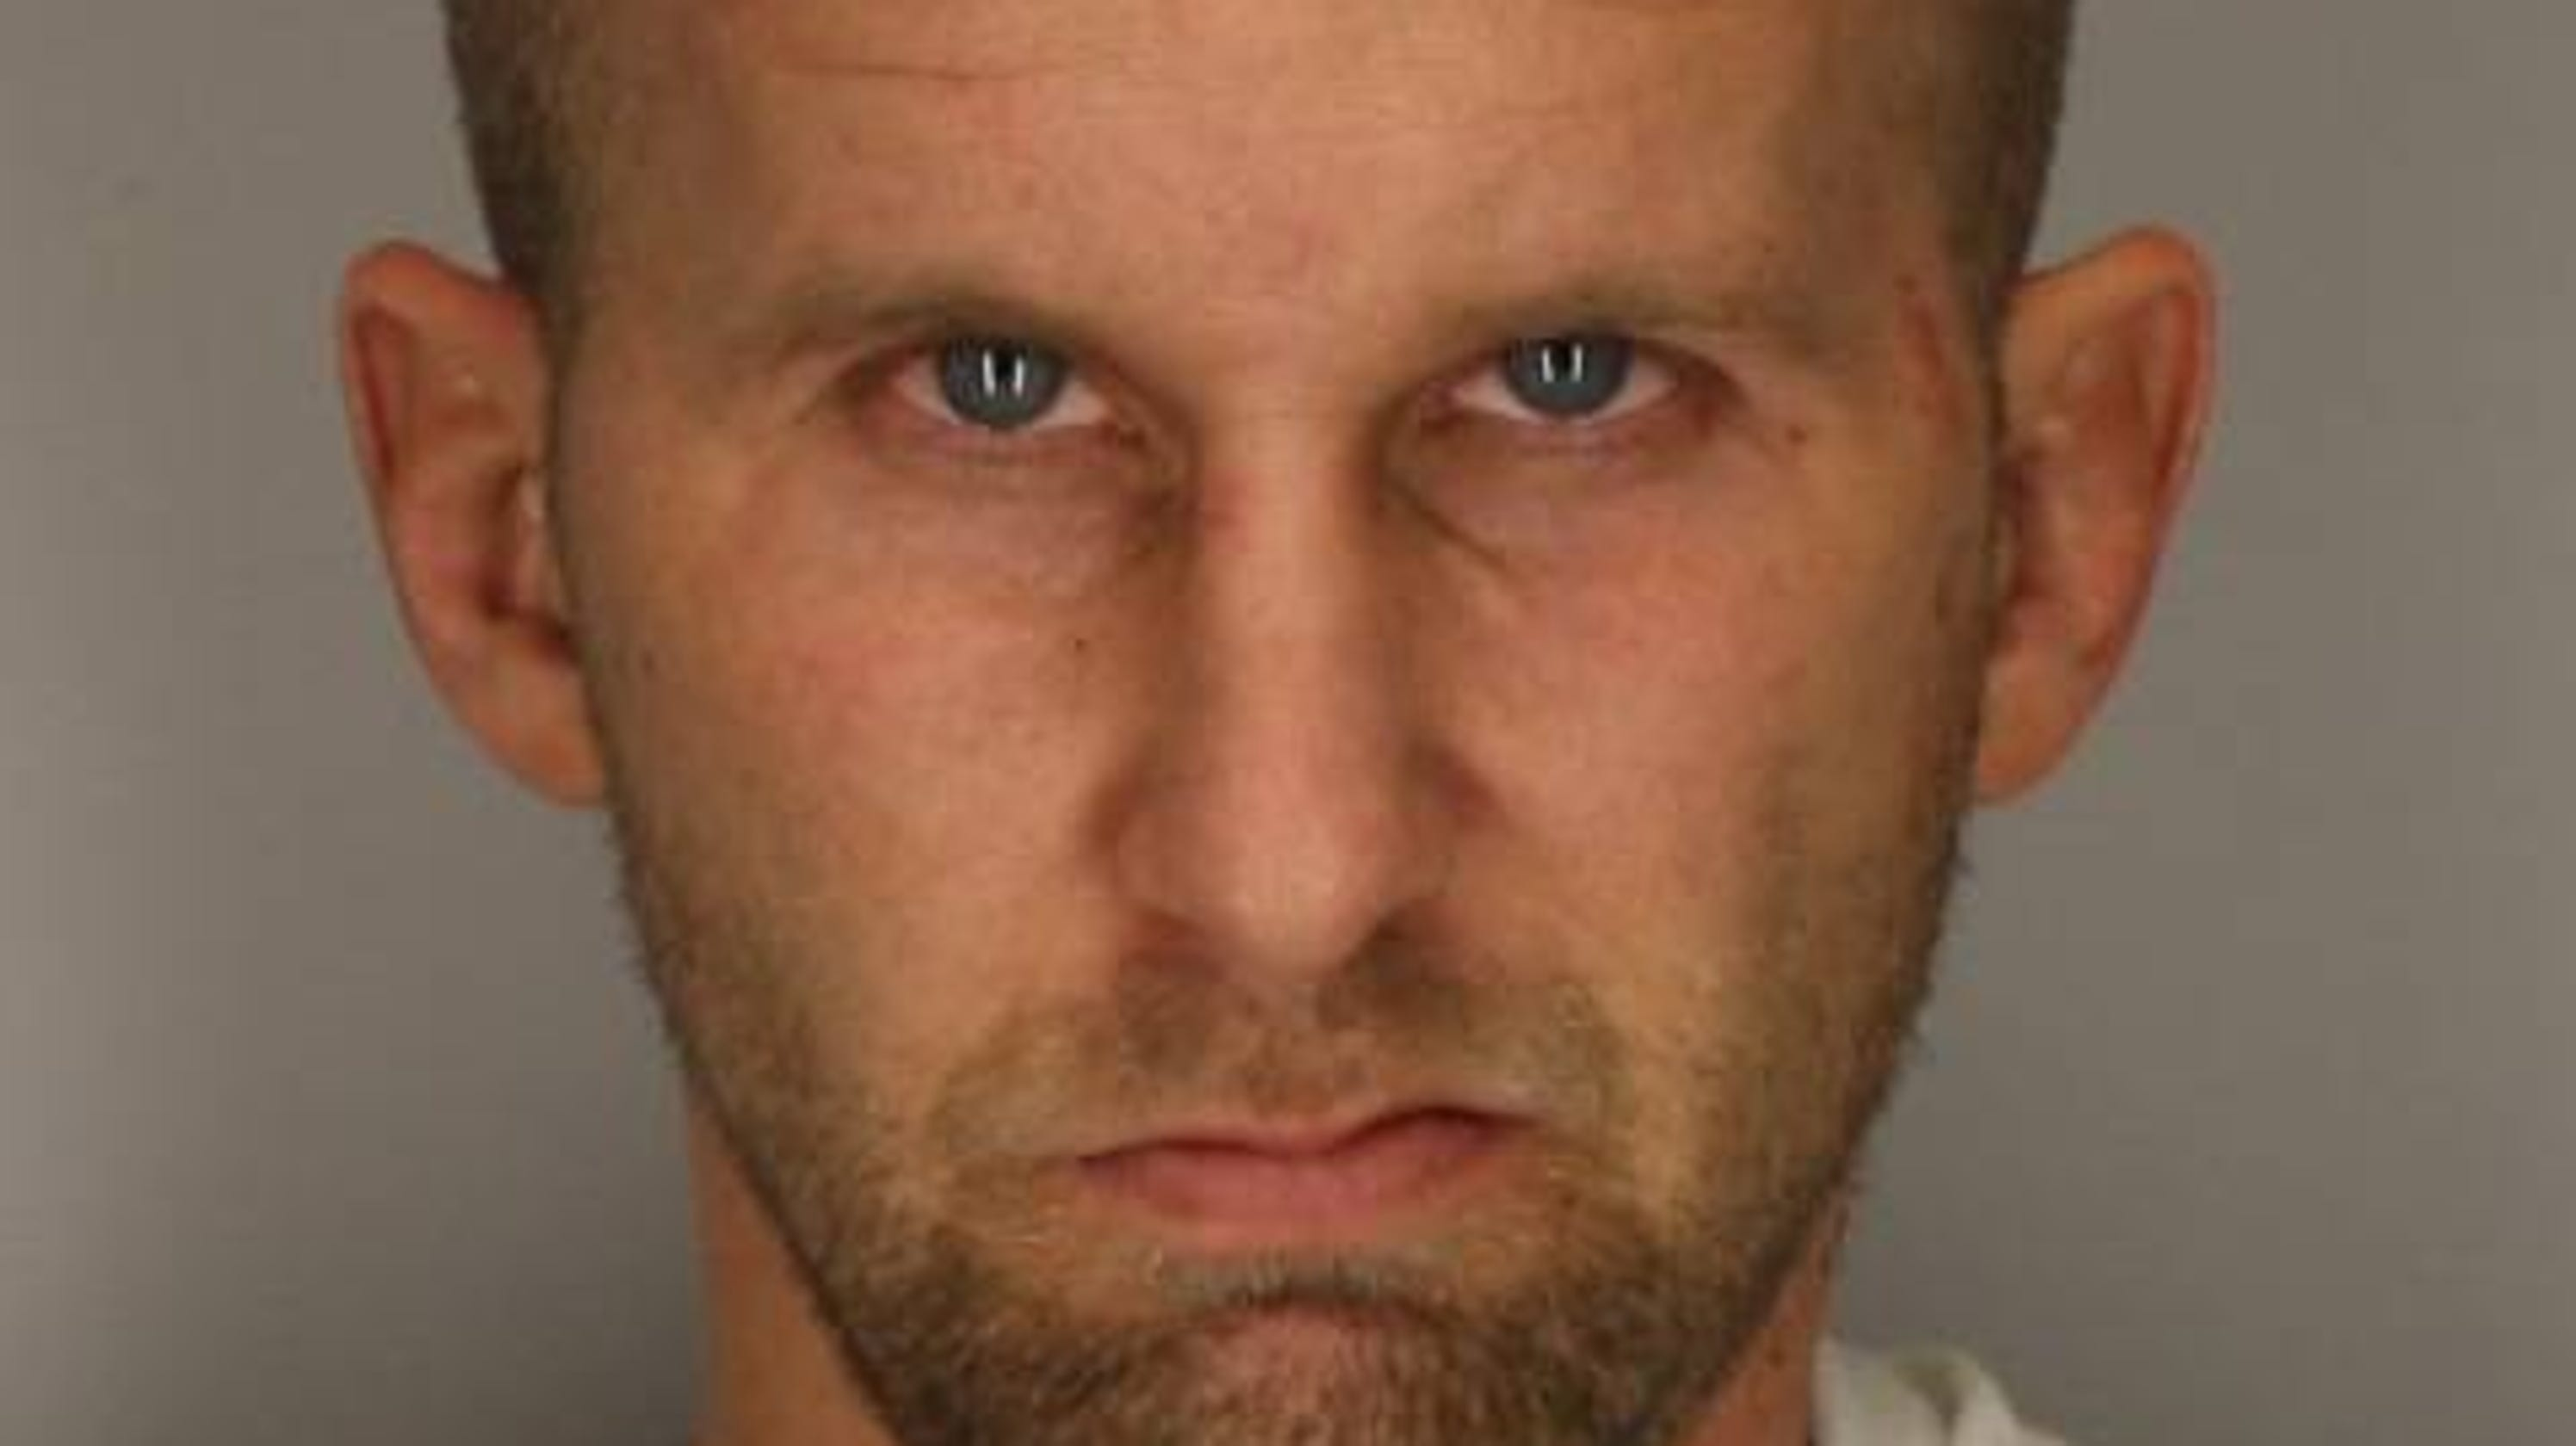 Norwich meth bust: Drug dealer pleads guilty, faces life in